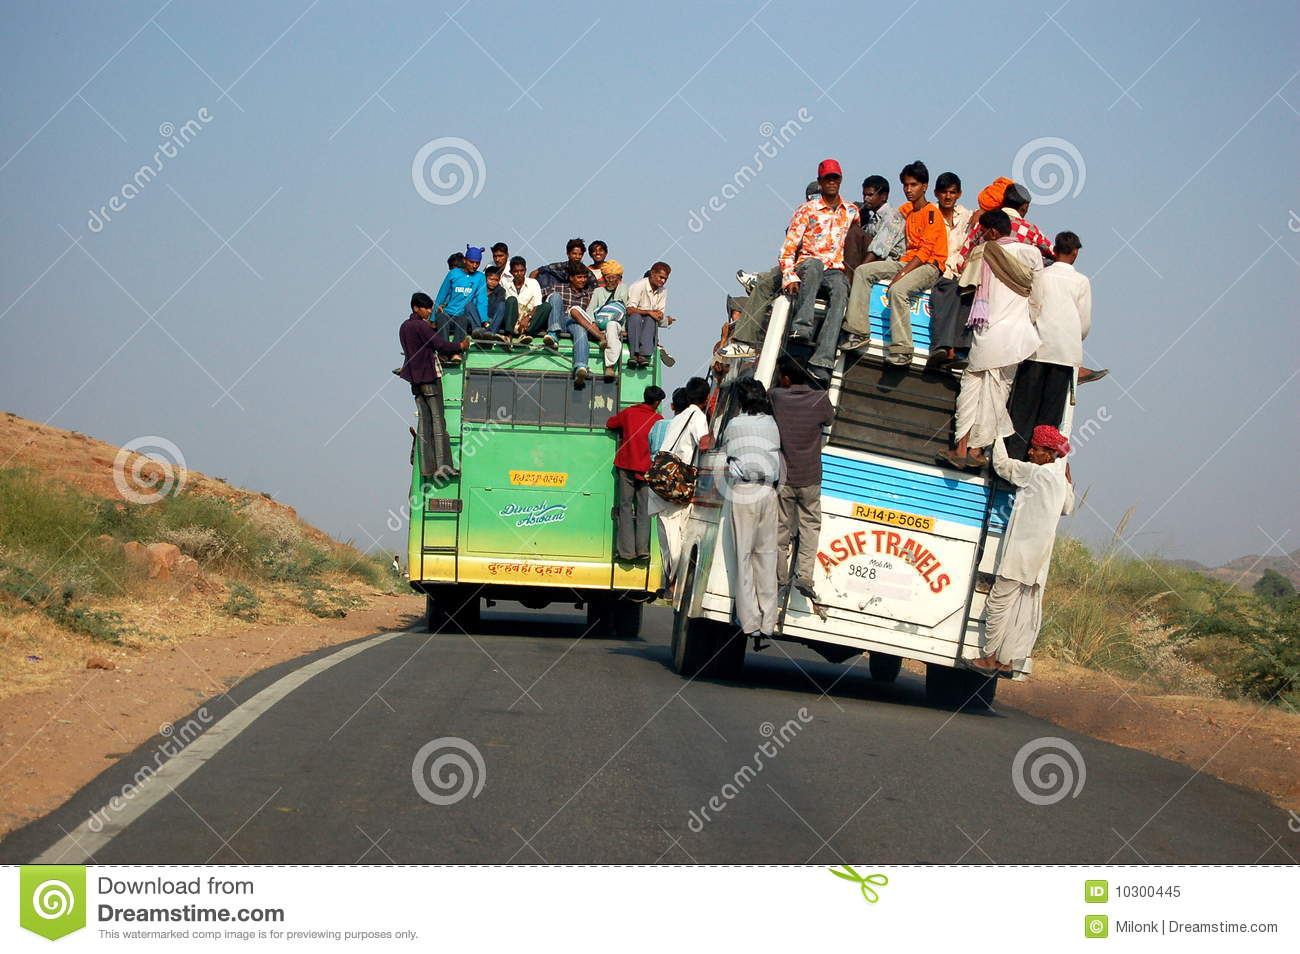 Bus Transportation In India Editorial Image - Image of rajasthan